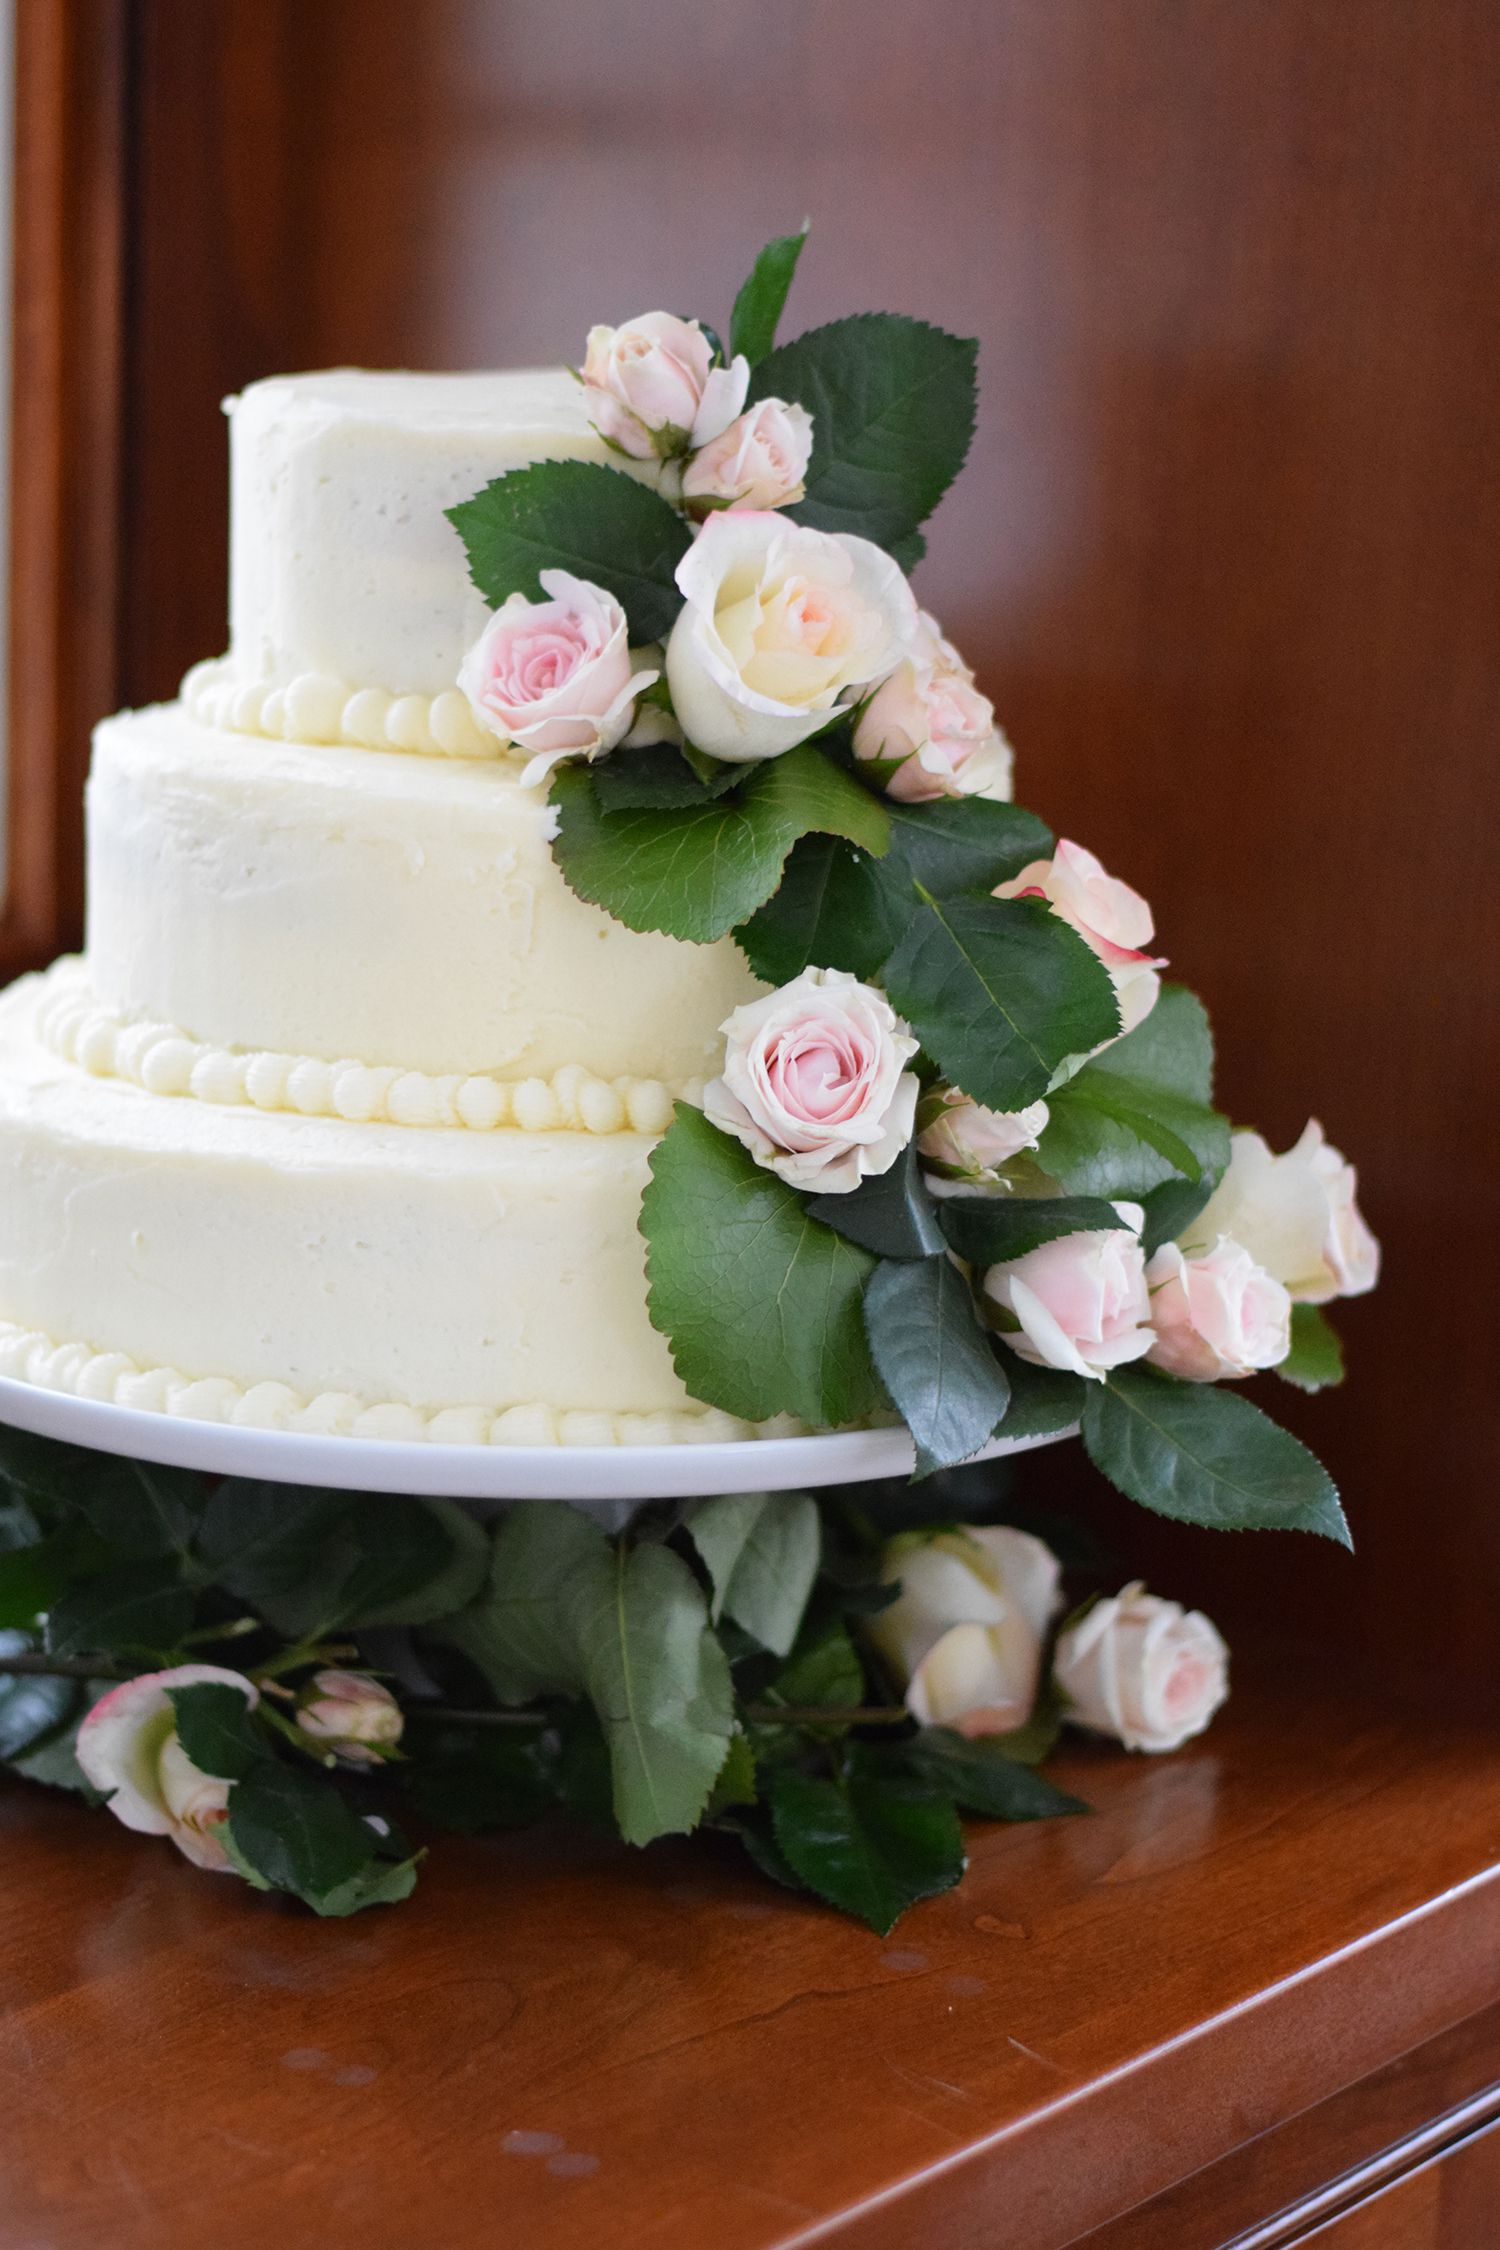 How to Bake and Decorate a 3-Tier Wedding Cake